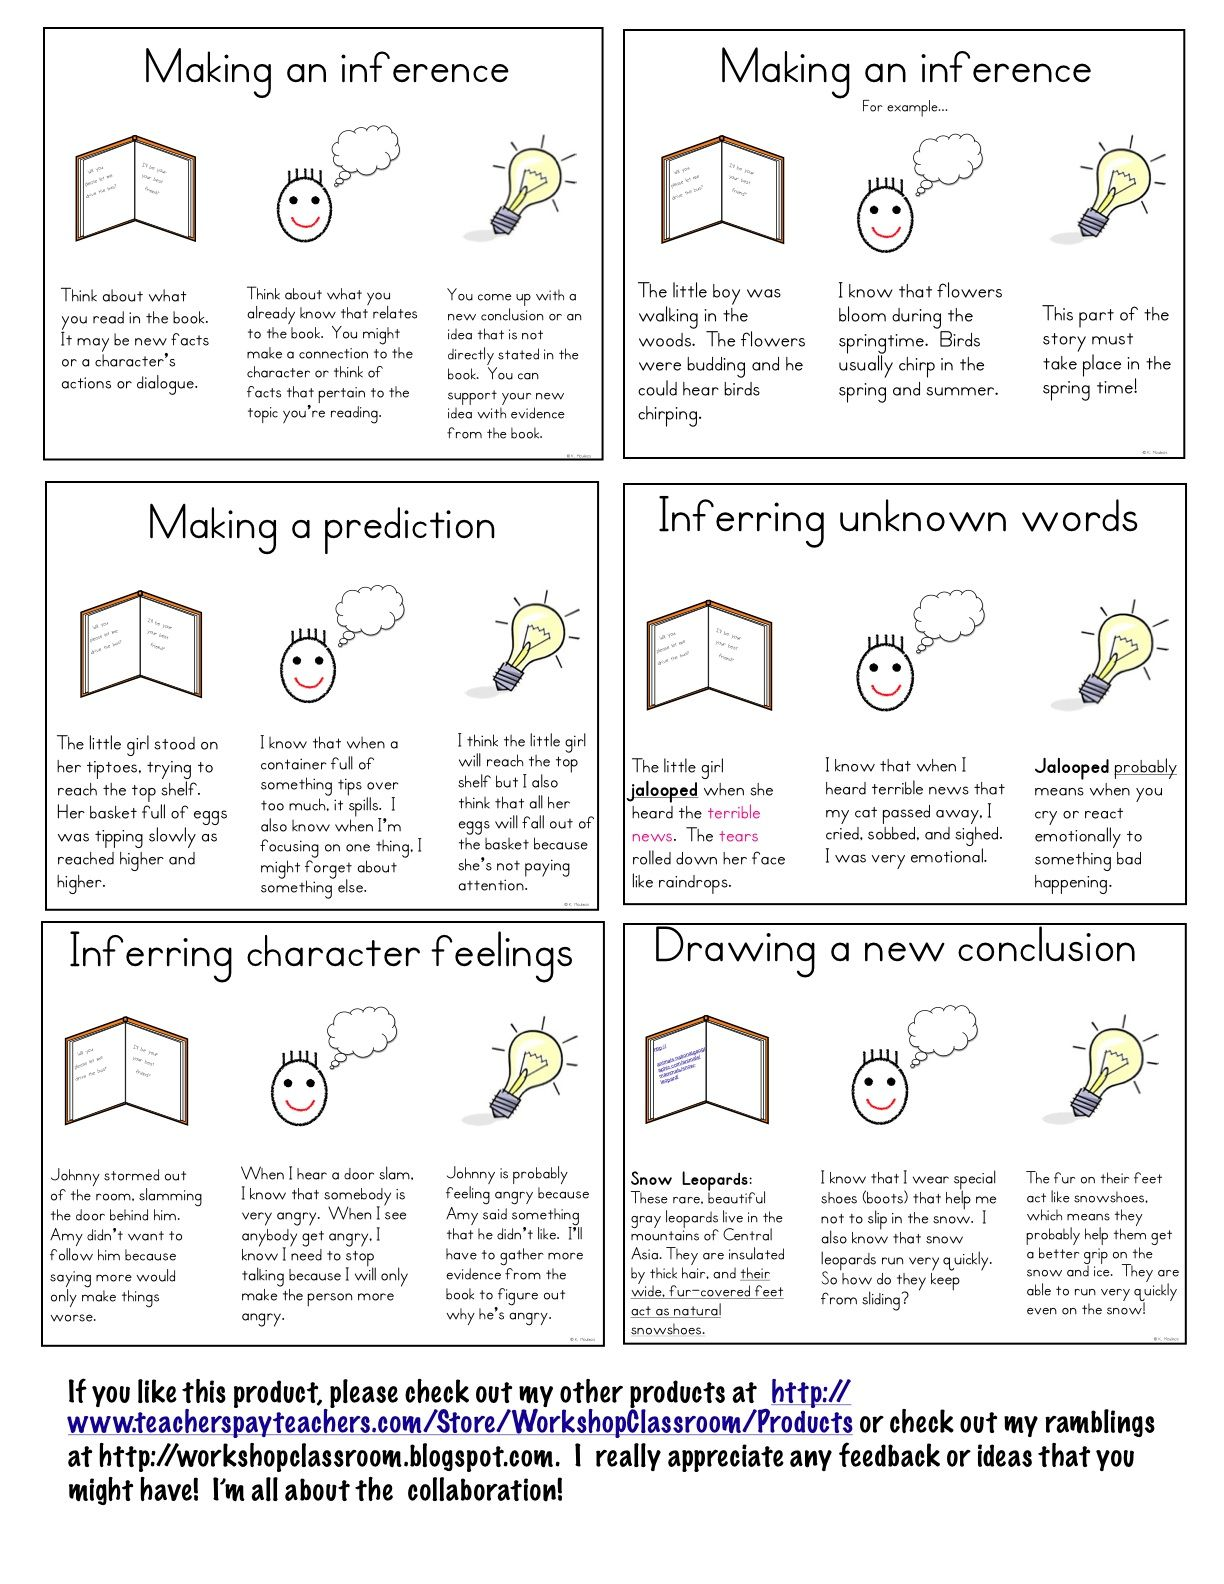 Free Worksheet Inference Worksheets 4th Grade 17 best images about inferencing on pinterest graphic organizers beautiful artwork and charts